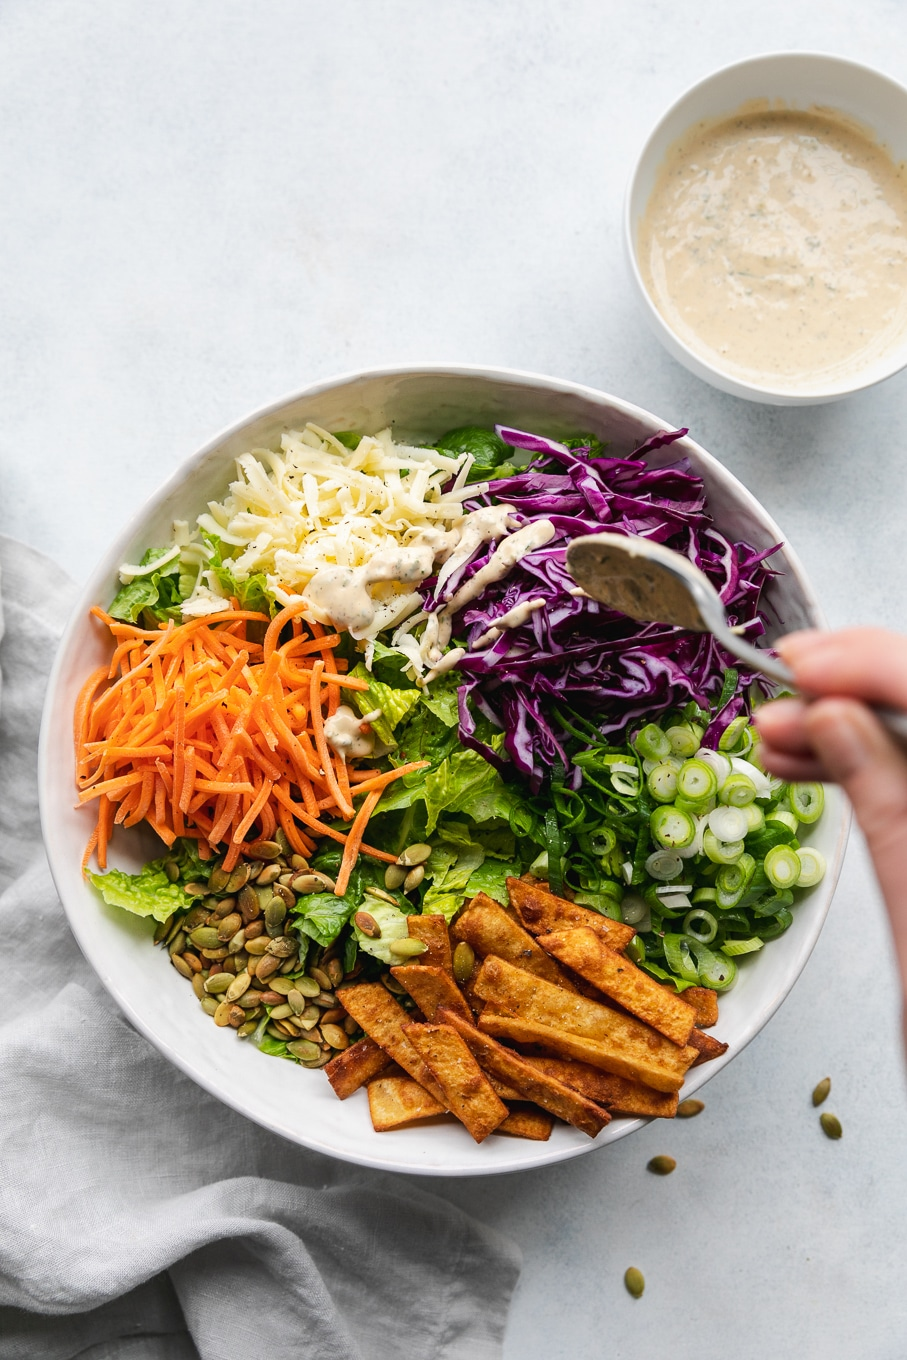 Overhead shot of a large mixing bowl filled with chopped romaine, shredded carrots, shredded white cheddar, shredded red cabbage, scallions, and tortilla strips being drizzled with a creamy sriracha ranch dressing